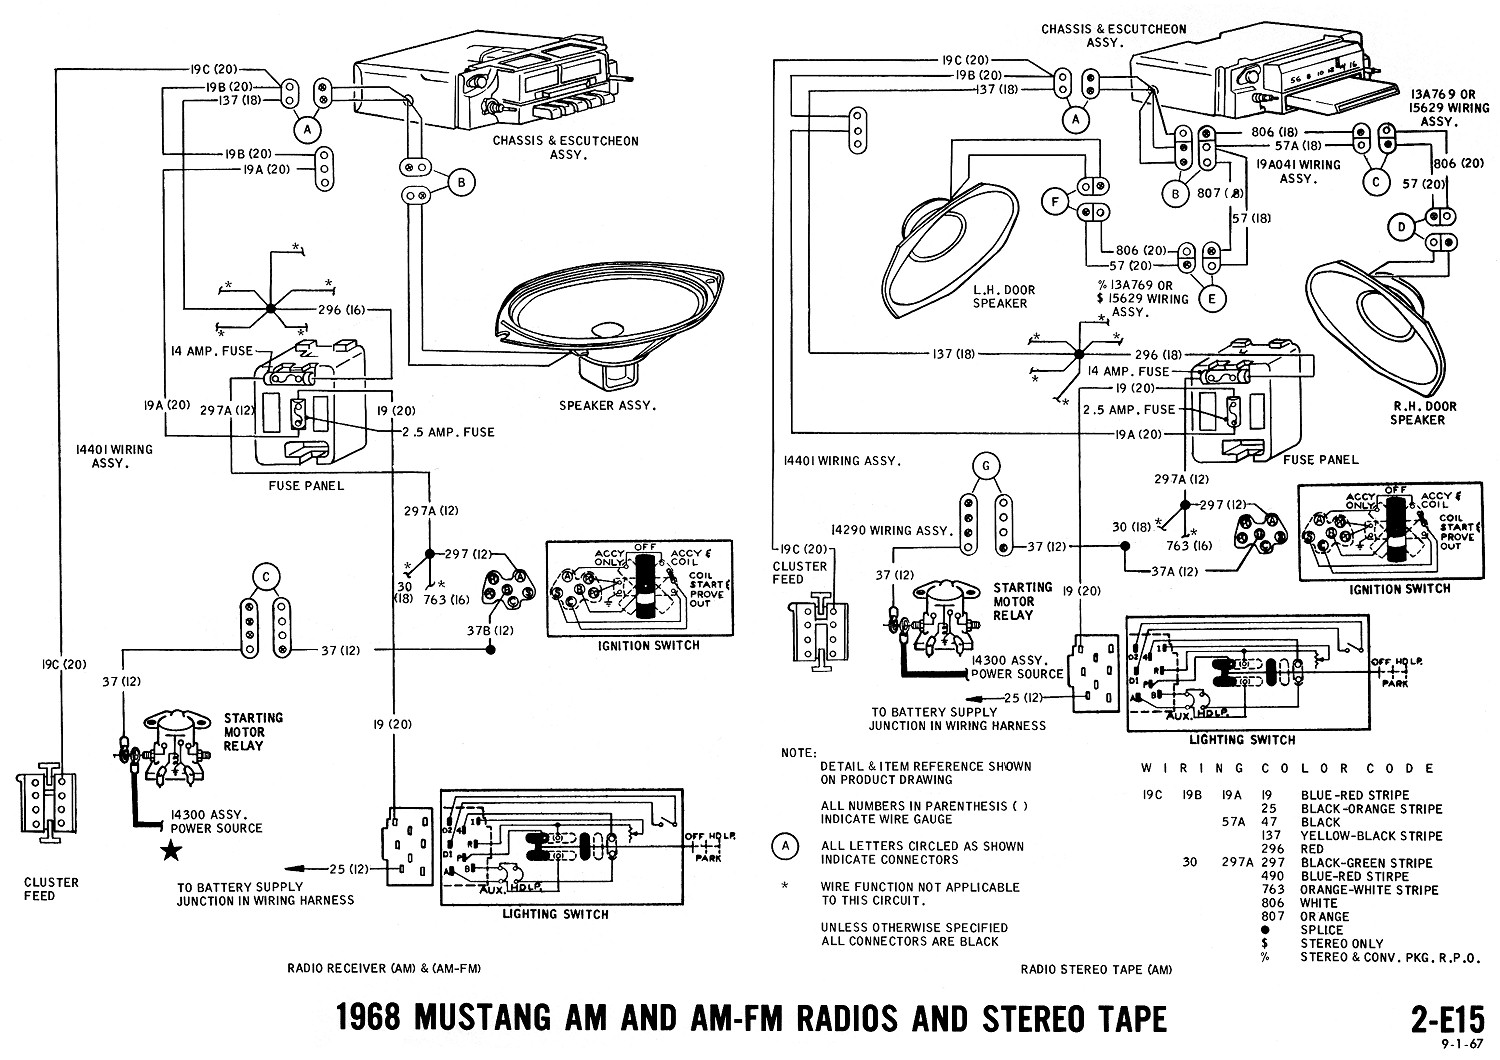 E15 66 mustang wiring diagram radio tape 66 mustang fuse diagram 2004 ford mustang wiring diagram at panicattacktreatment.co